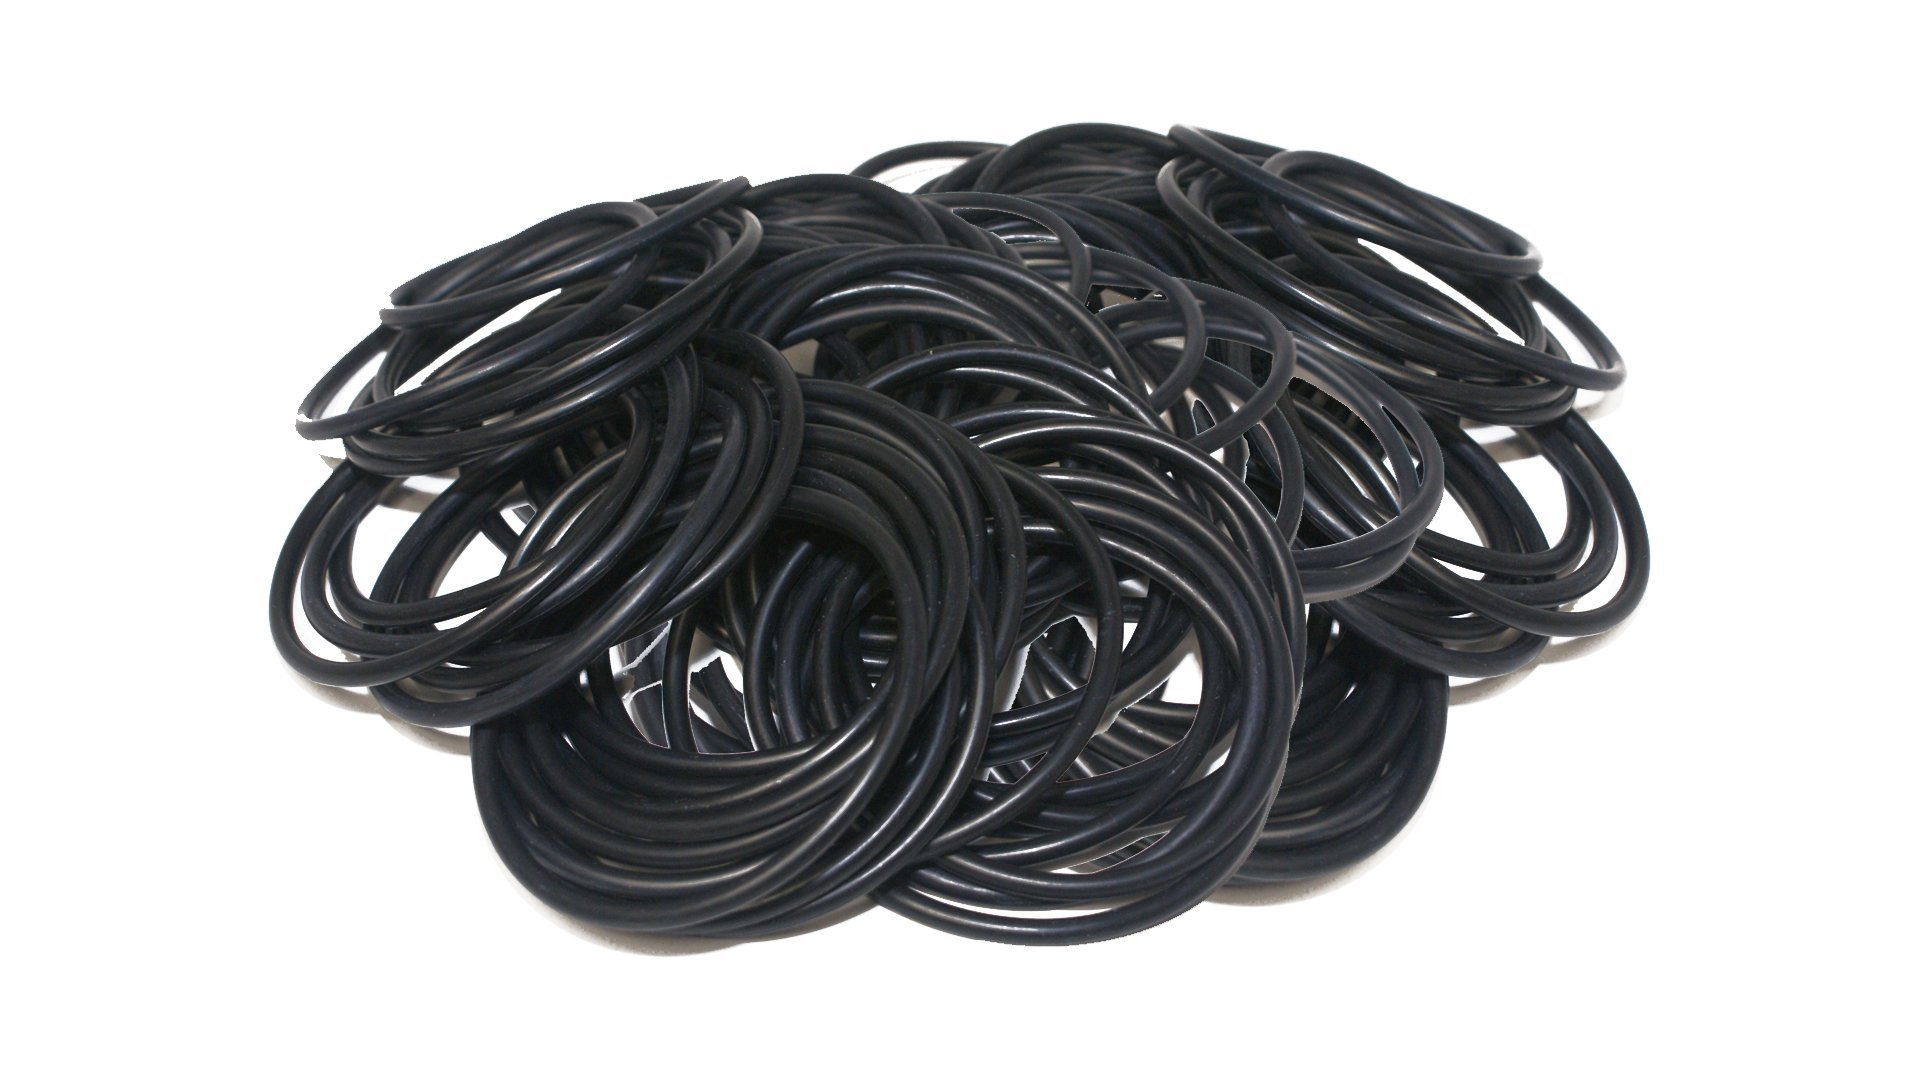 Sterling Seal OREPDNSF70D168X100 168 70D NSF Approved O-Ring, EPDM/Ethylene/Propylene (Pack of 100)